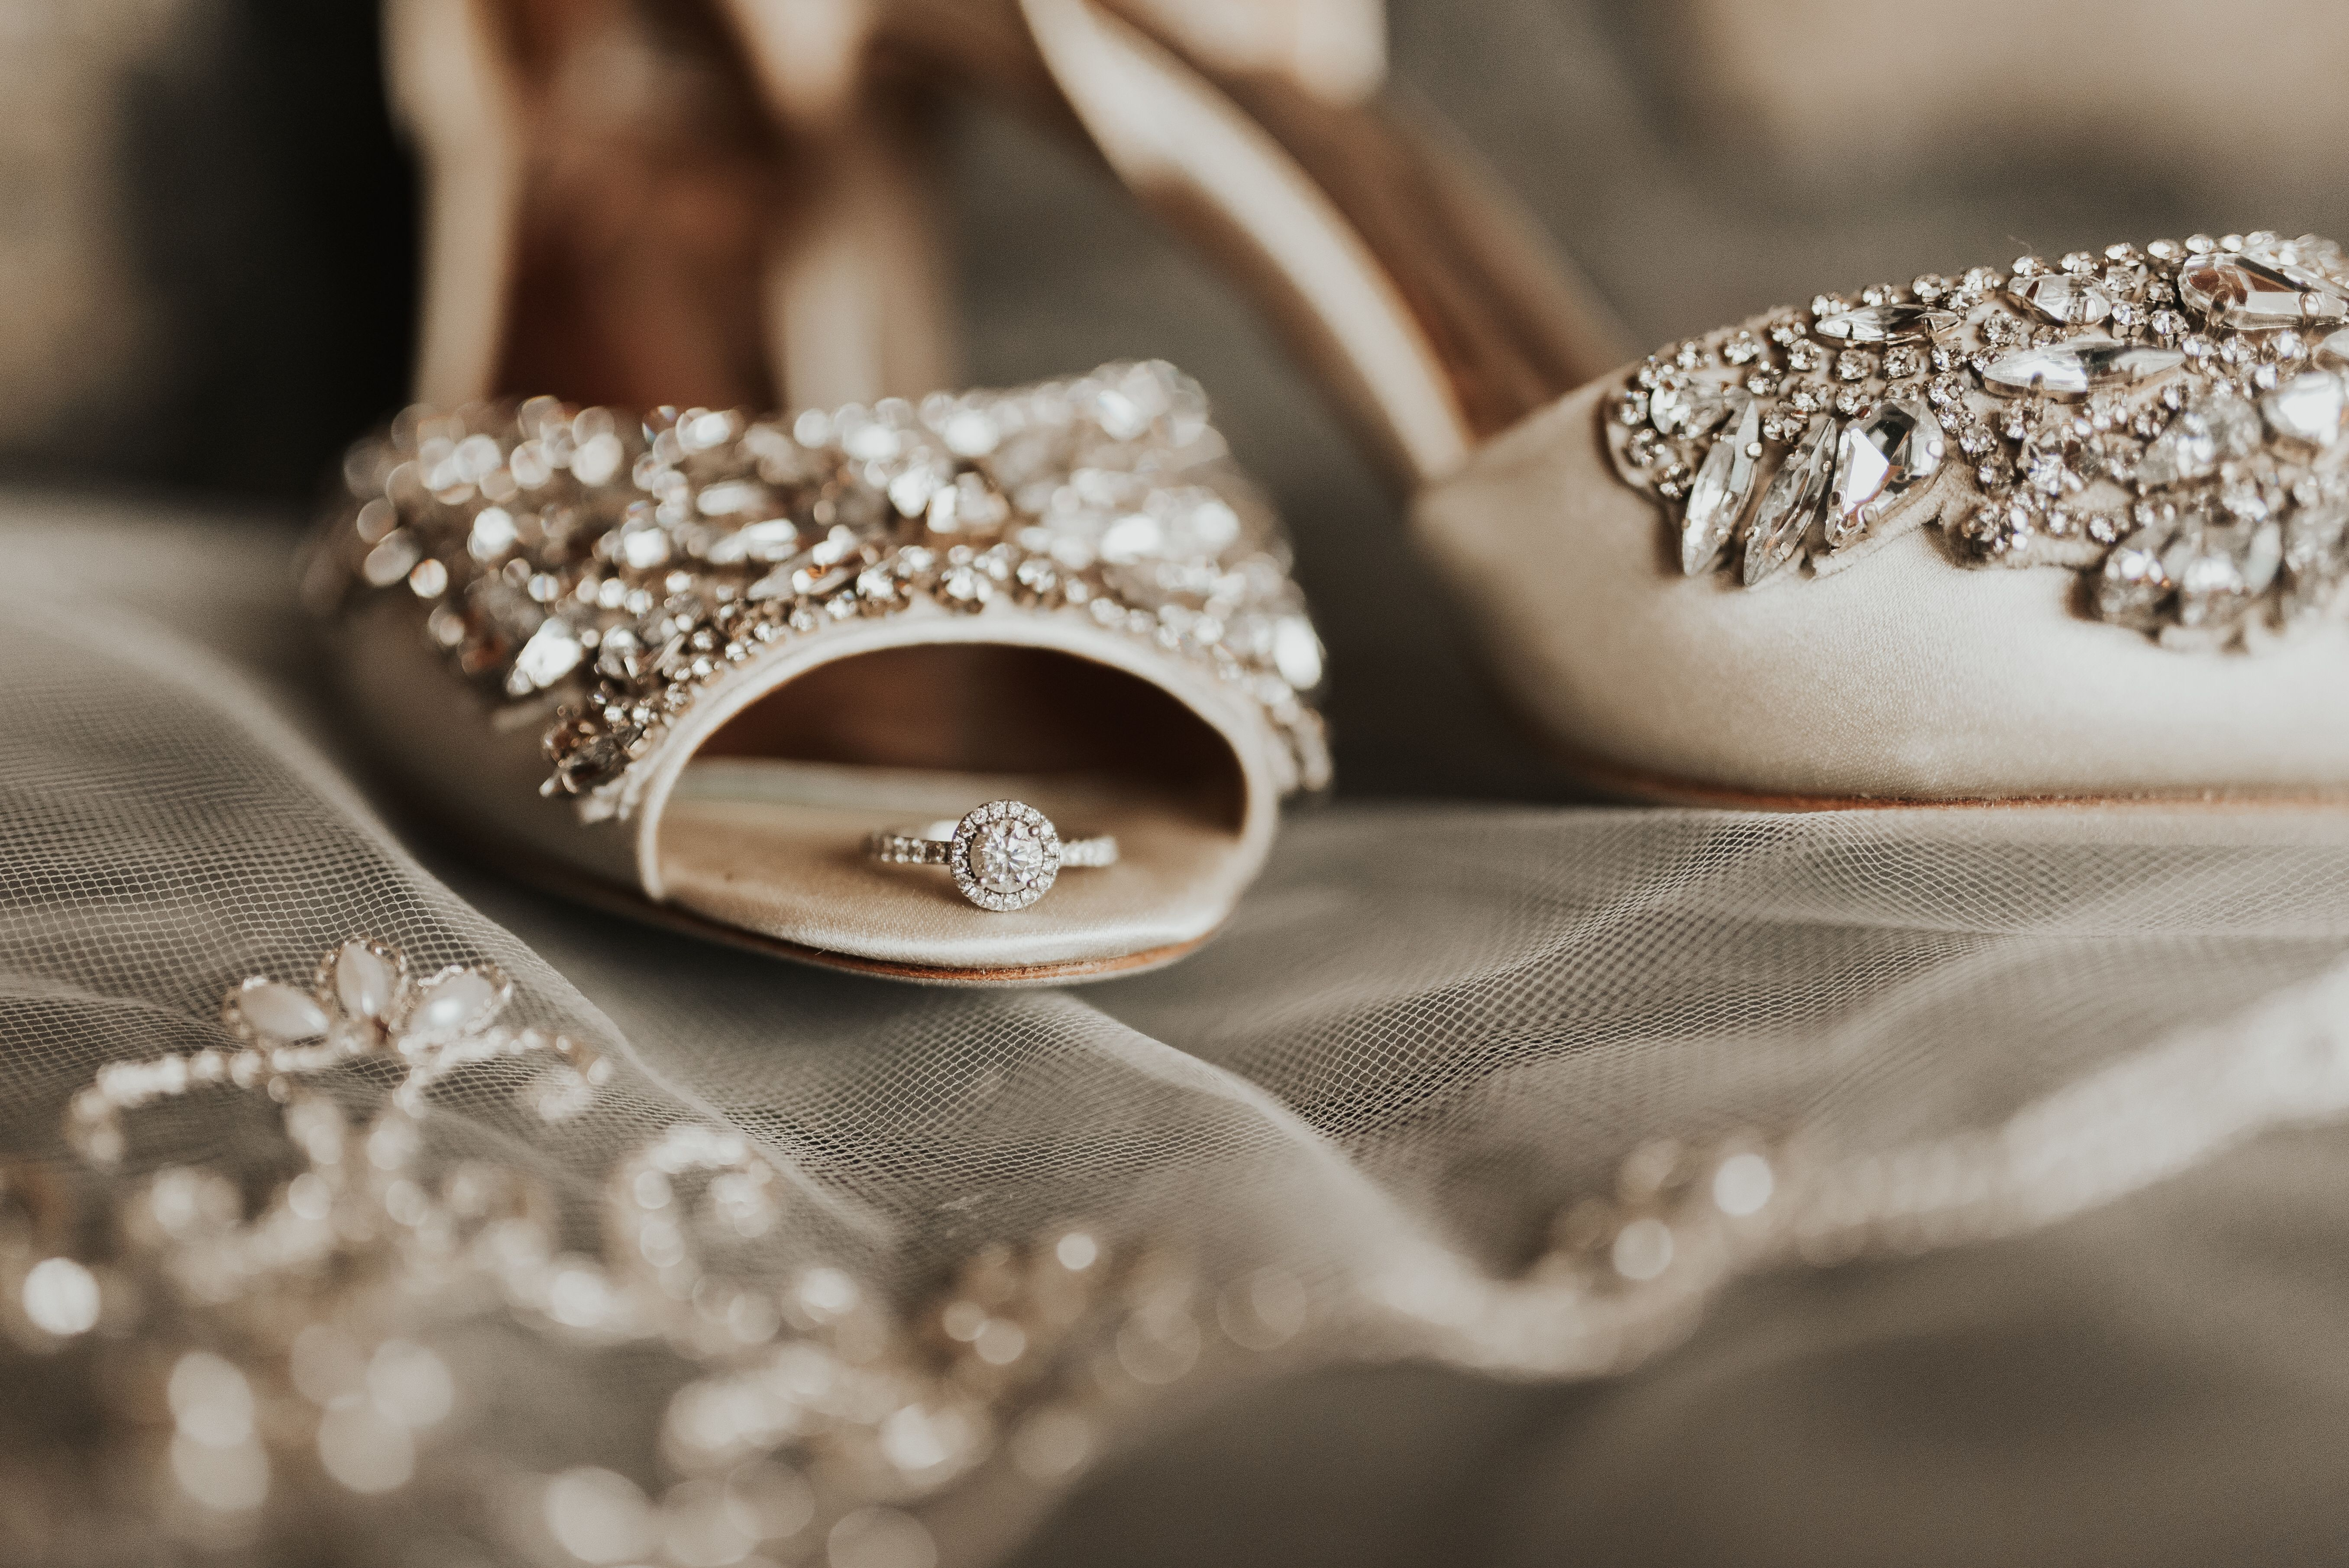 Wedding Photography Detail Shot With Shoes And Ring And Veil